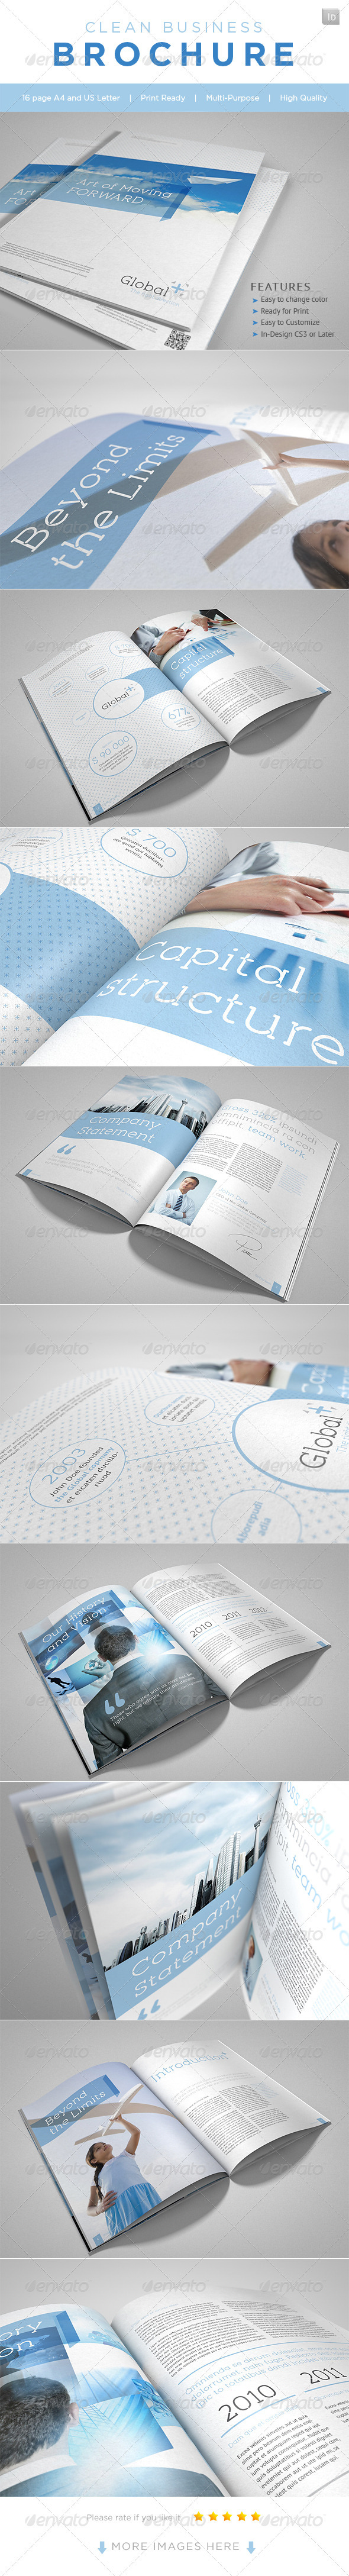 Clean Business Brochure - Corporate Brochures